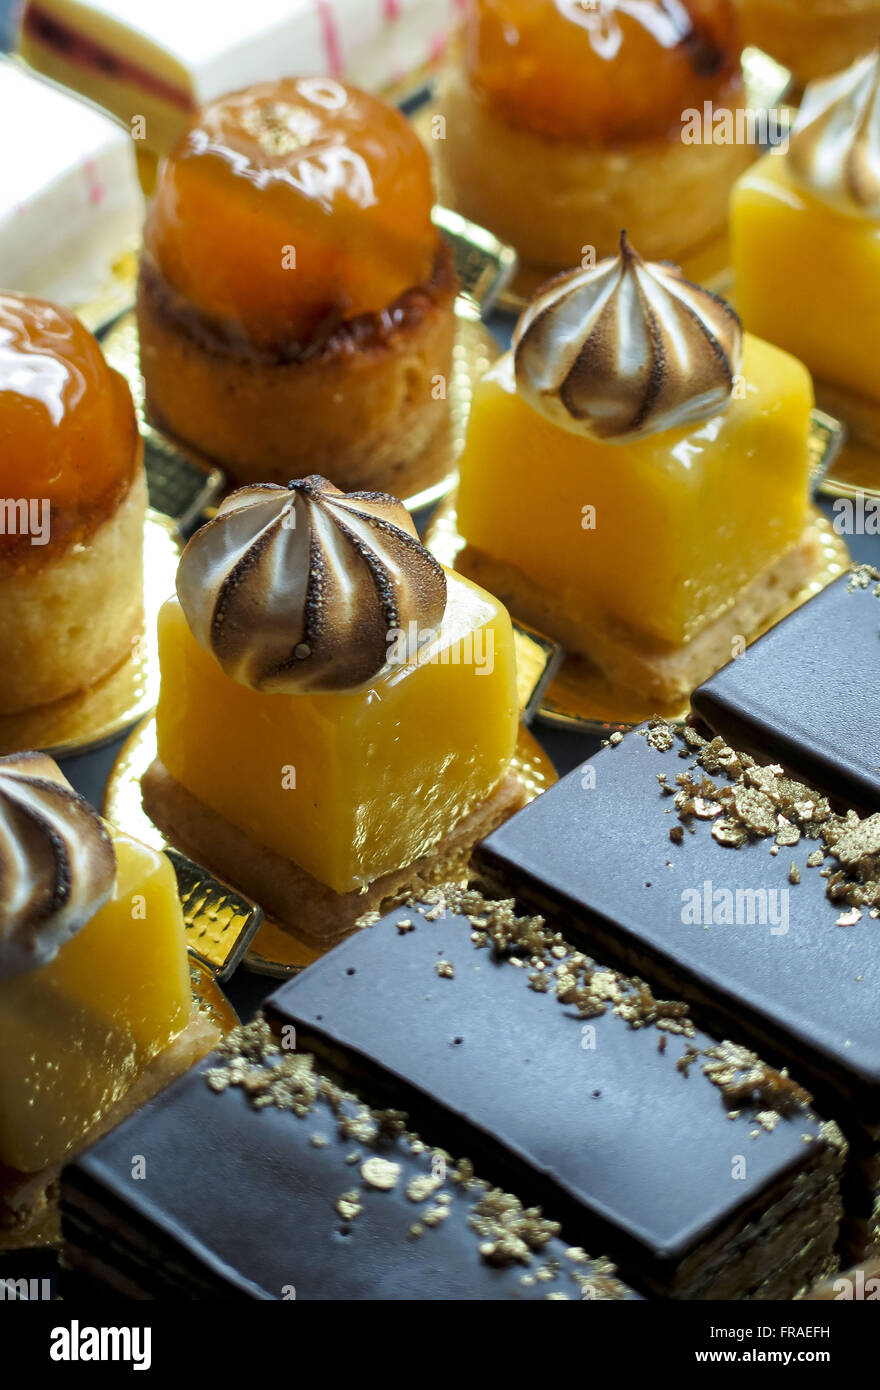 Sweets for sale in patisserie - Stock Image